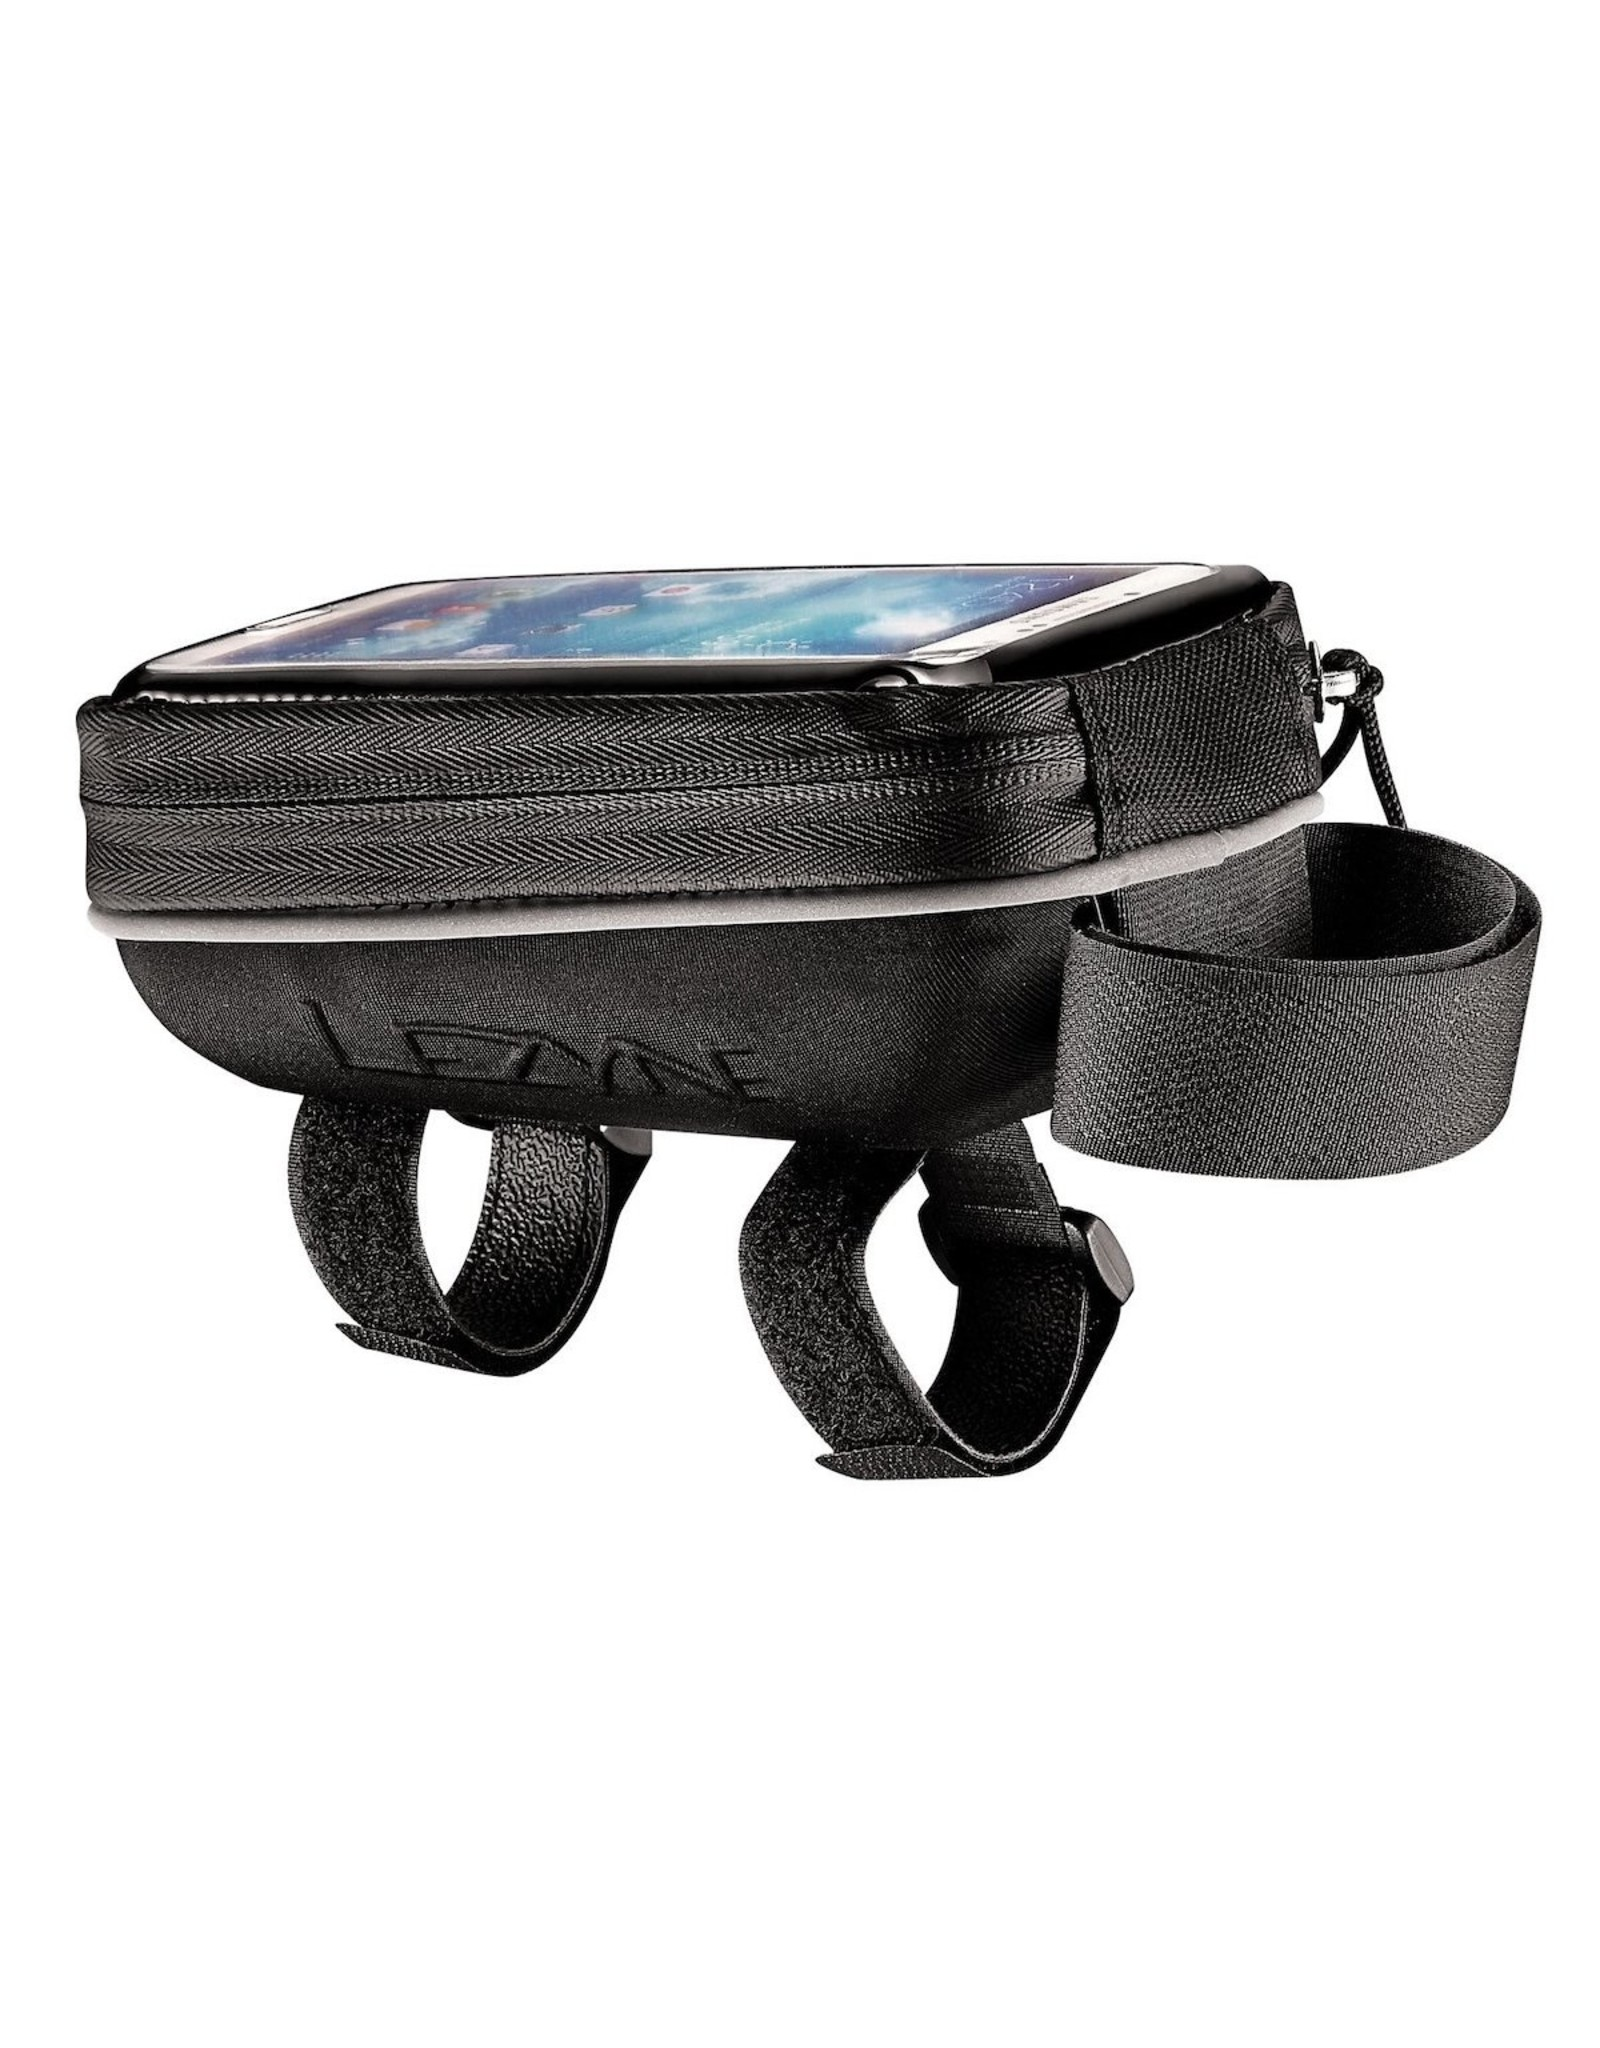 Lezyne Lezyne Smart Energy Caddy